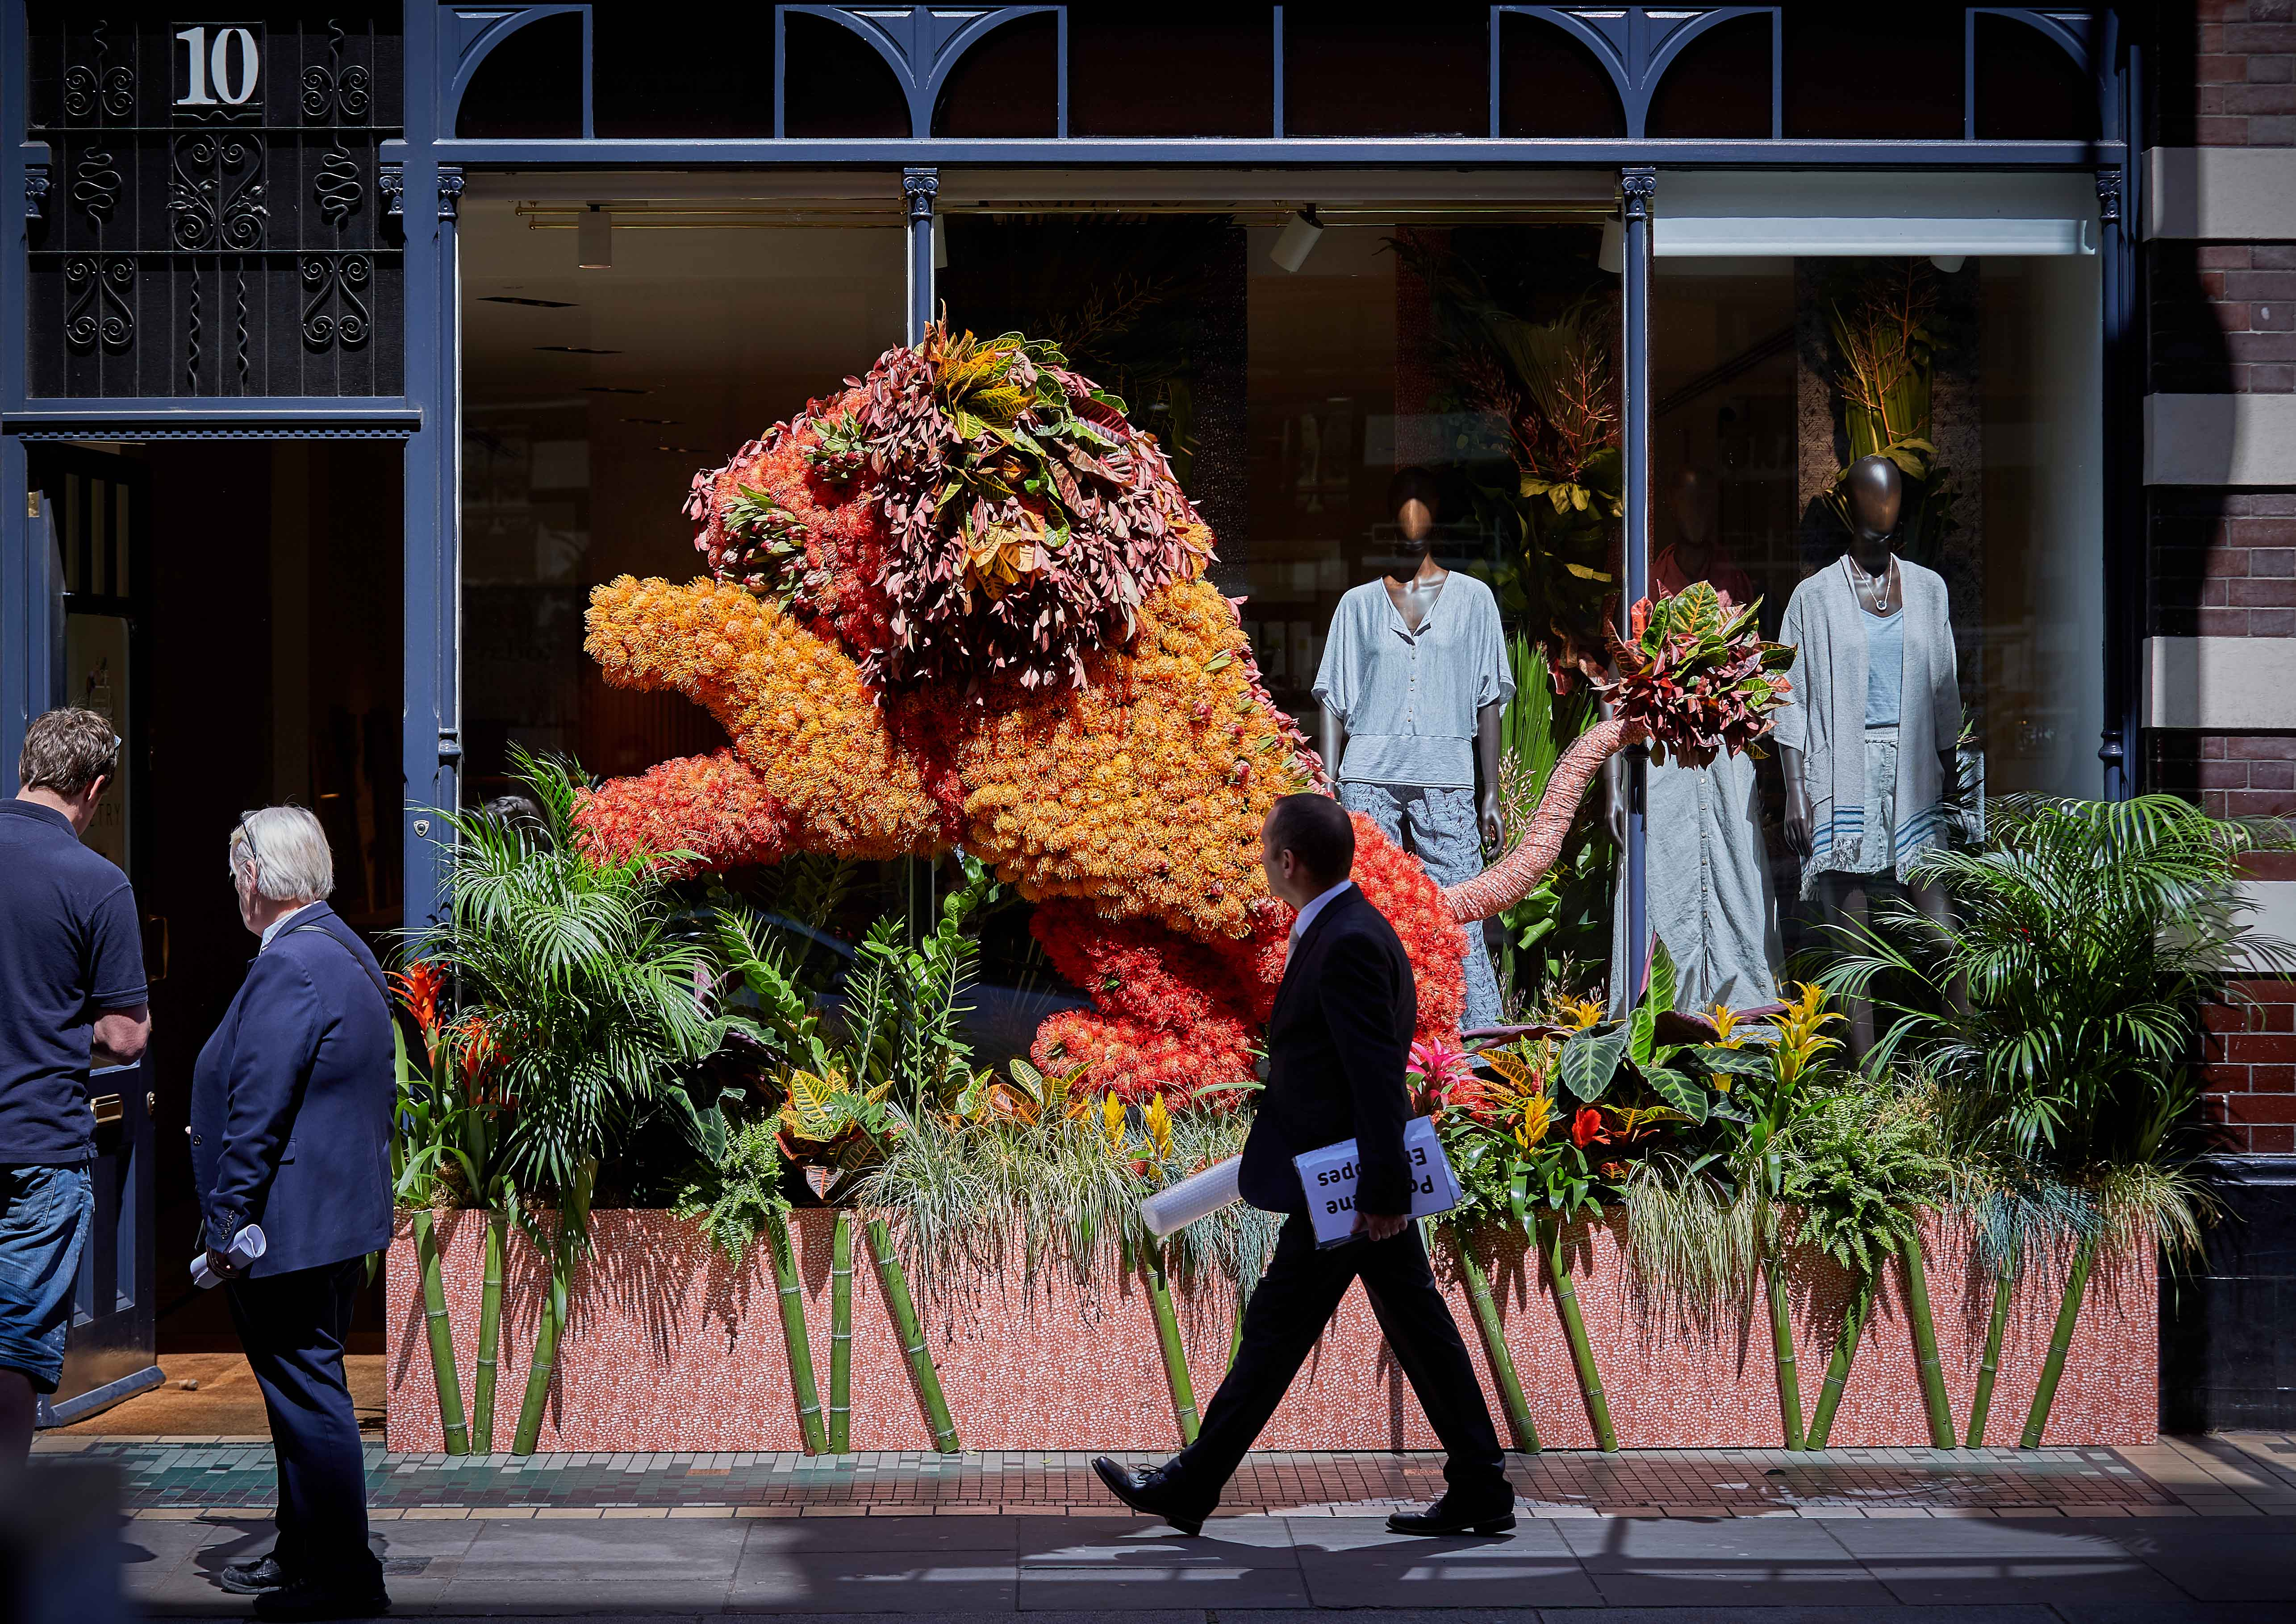 """An image from the """"Chelsea in Bloom"""" retail initiative"""